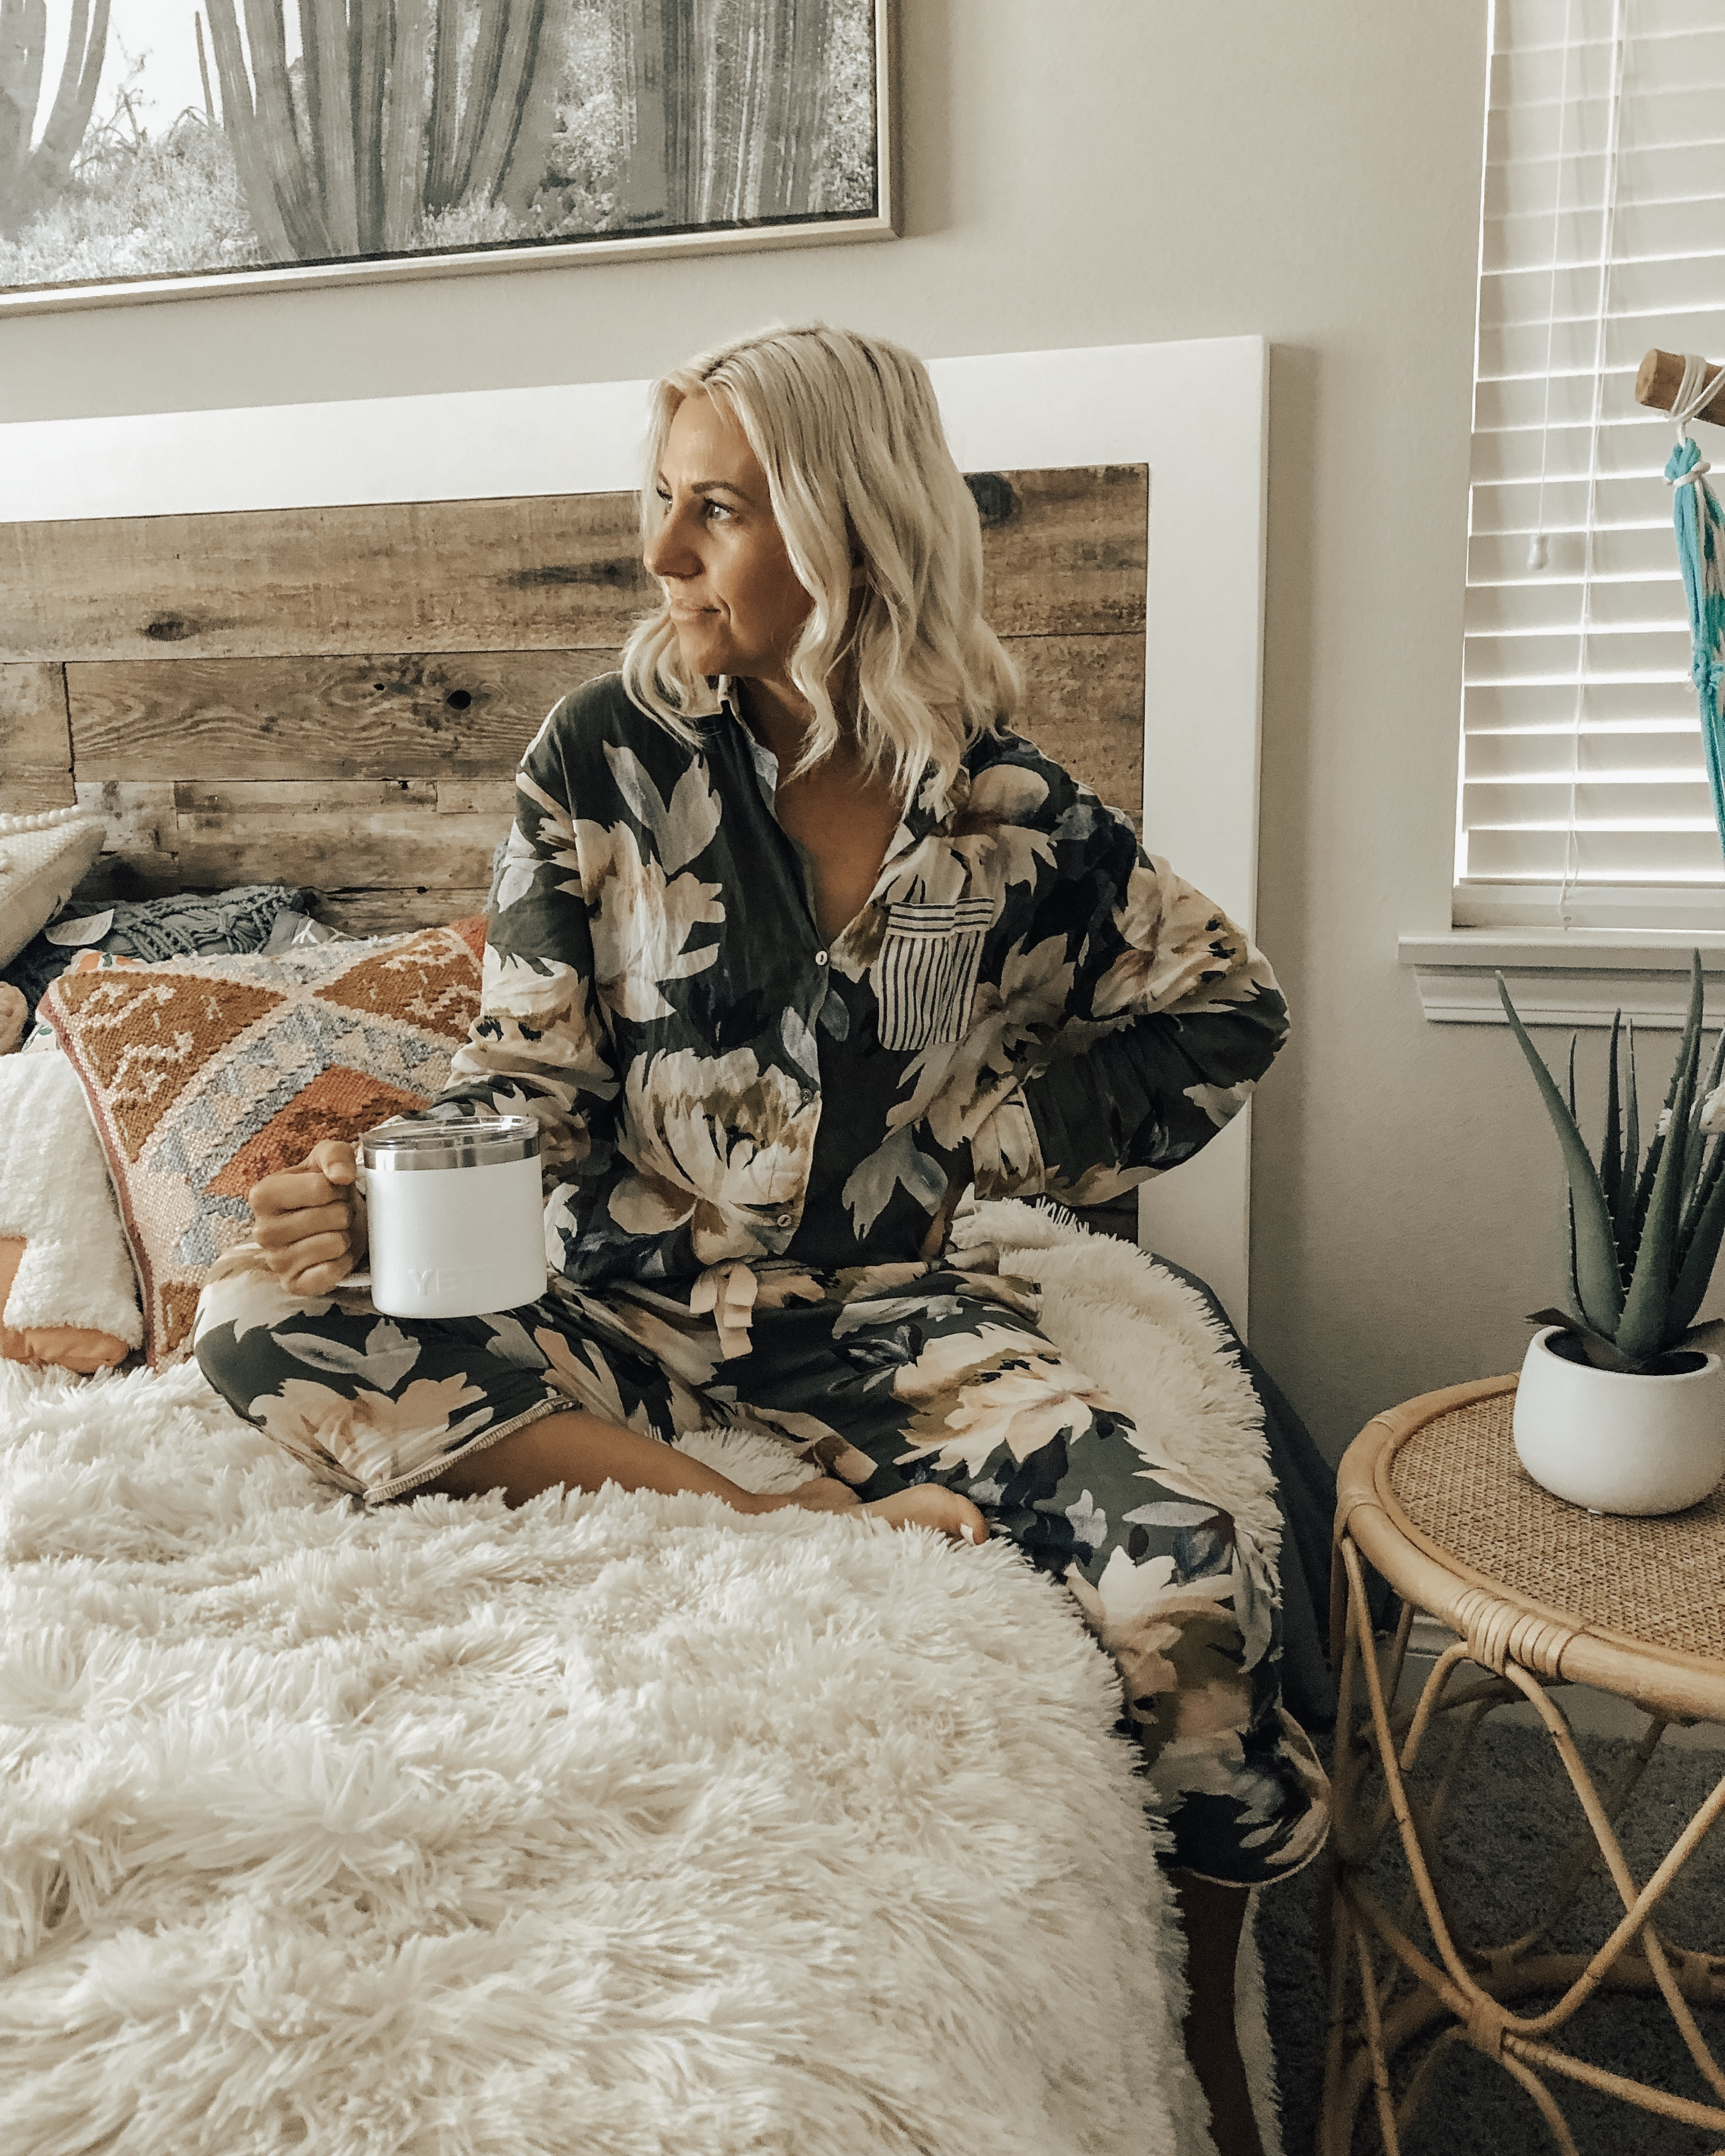 THE COZIEST PAJAMA SETS- Jaclyn De Leon Style + With a new season comes new pajamas and I have found some of the cutest spring & summer pj sets. Tons of adorable prints with the coziest fabric.